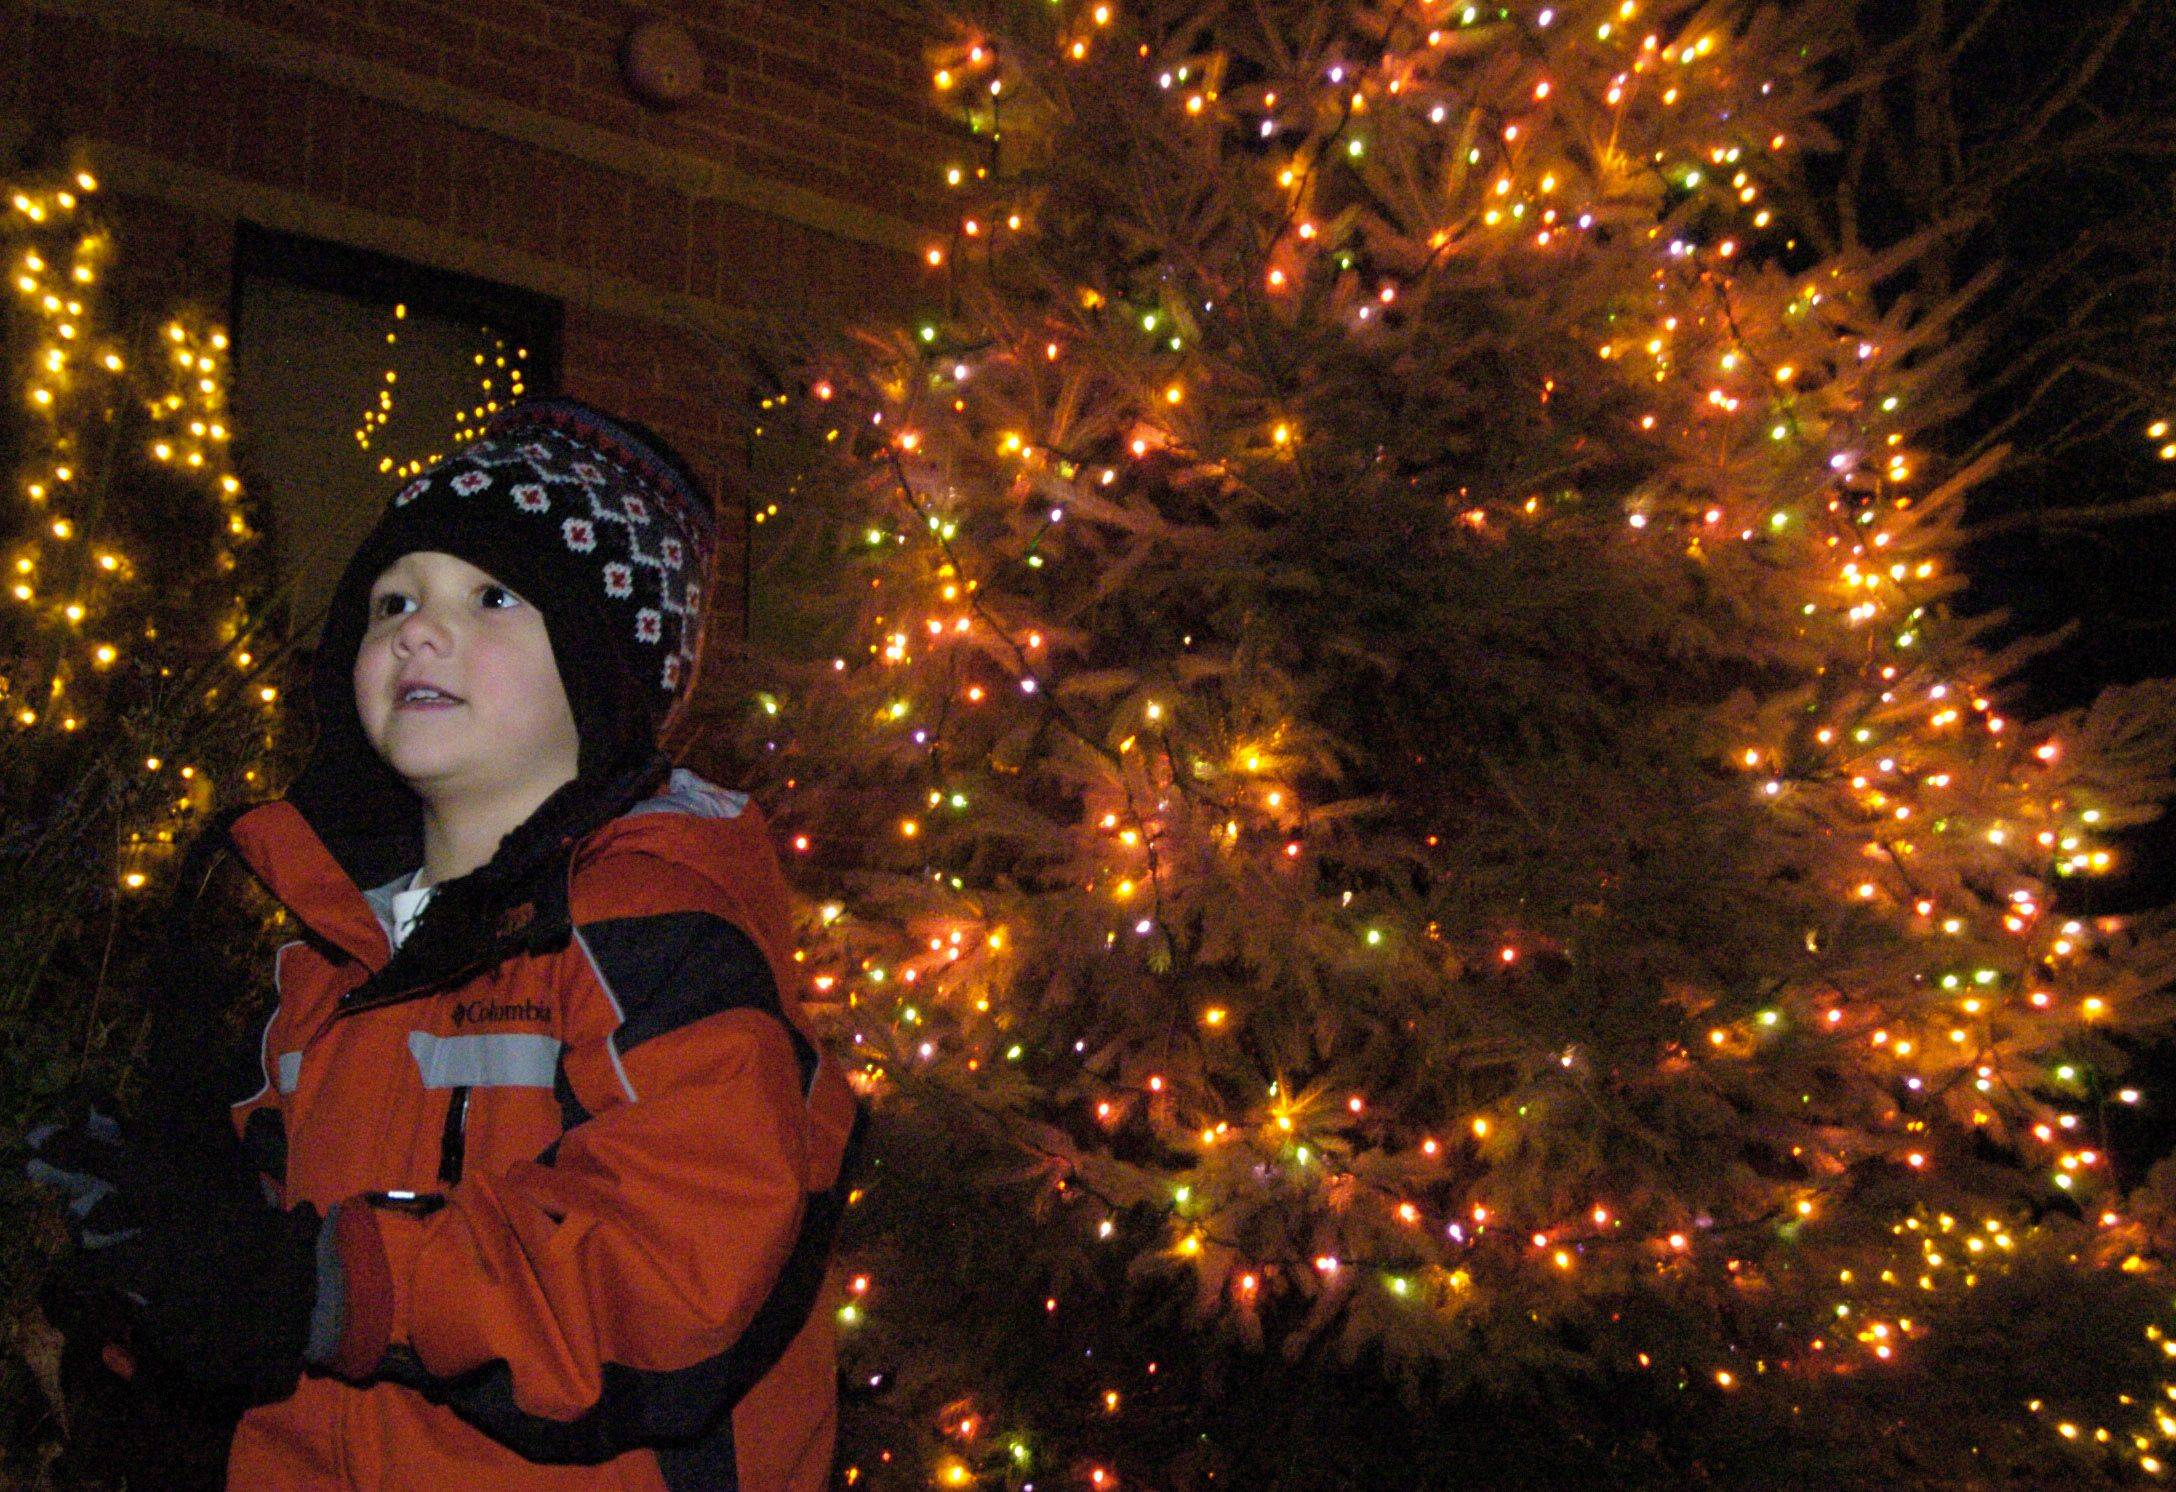 Dayton Diaz, 4, of Buffalo Grove attends Saturday evening's tree lighting ceremony in Prospect Heights.